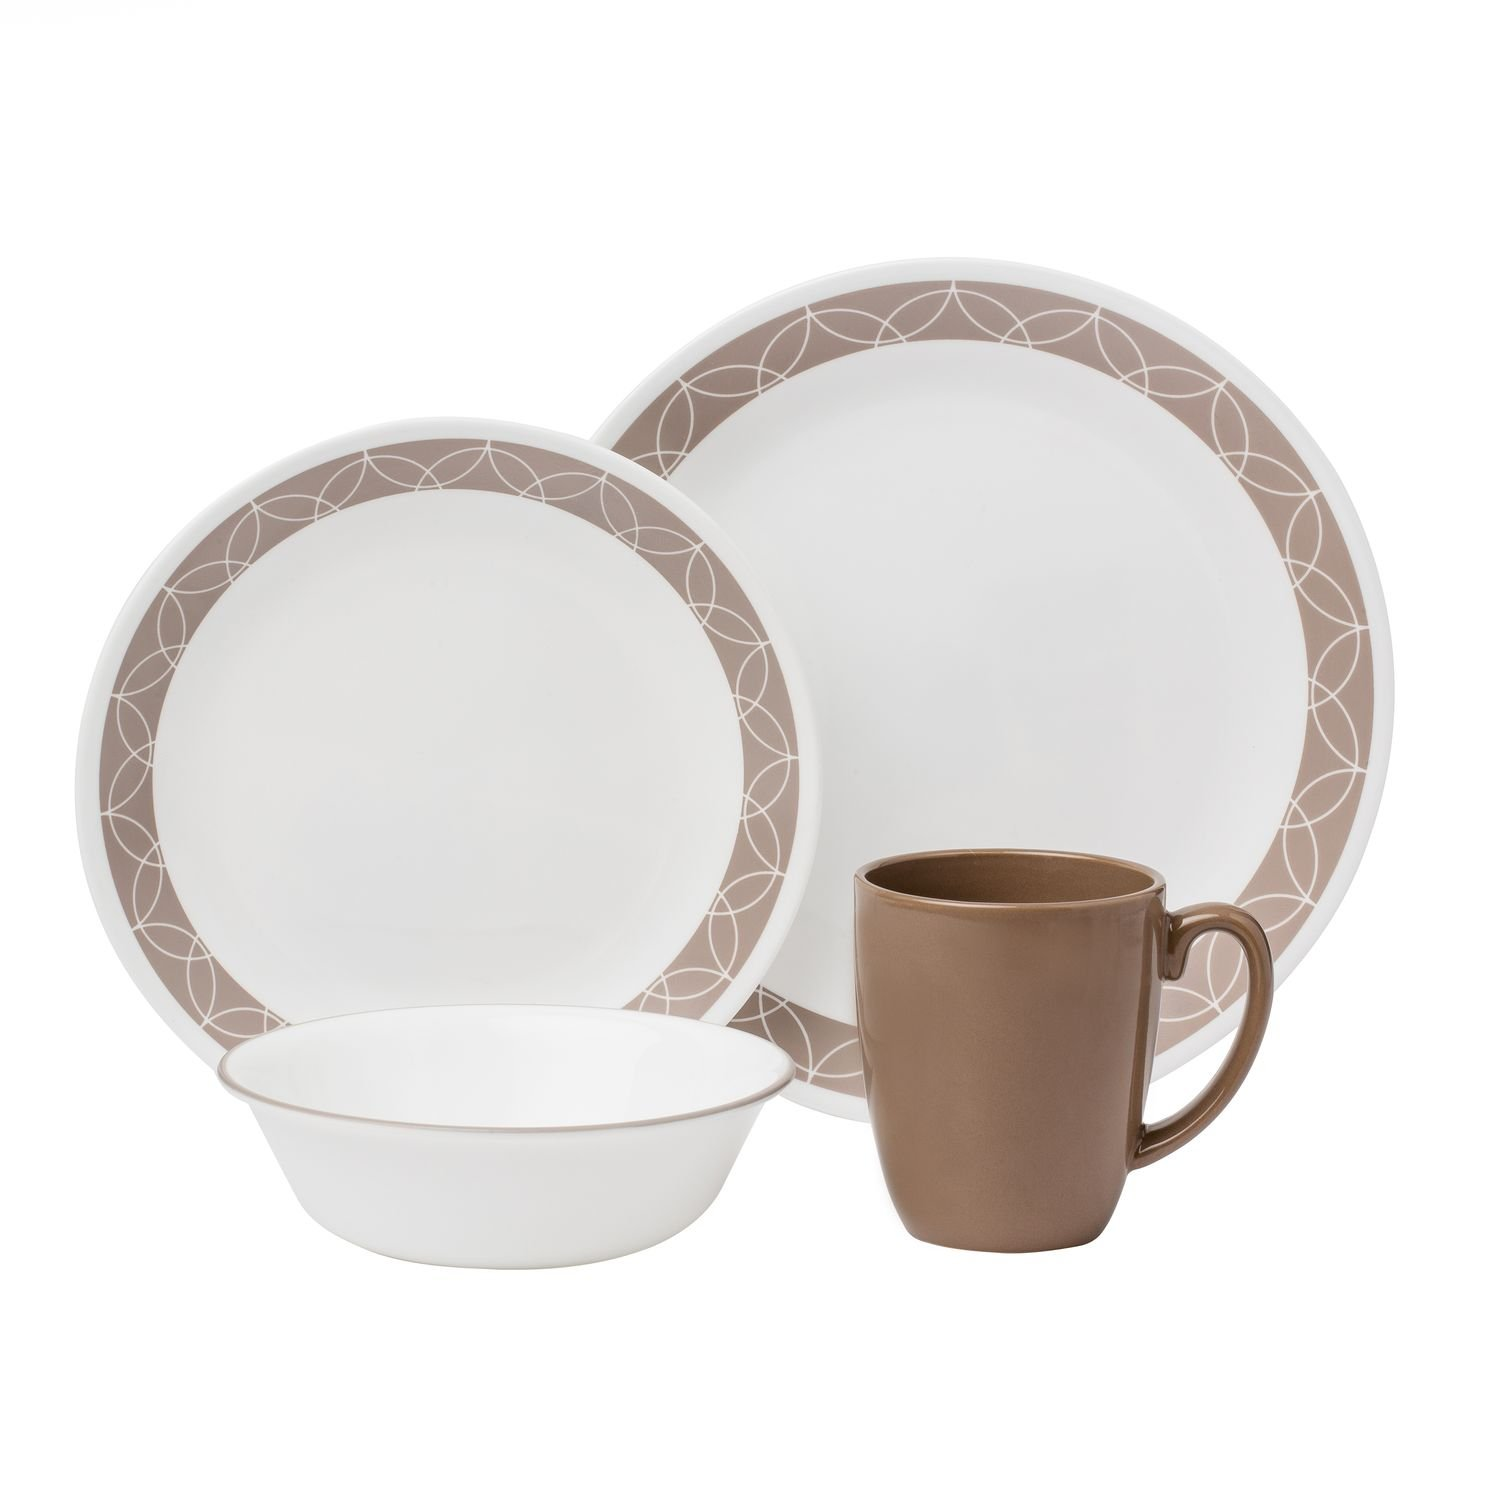 Buy 16 Pcs 20 Pcs Corelle Livingware Dinnerware Set